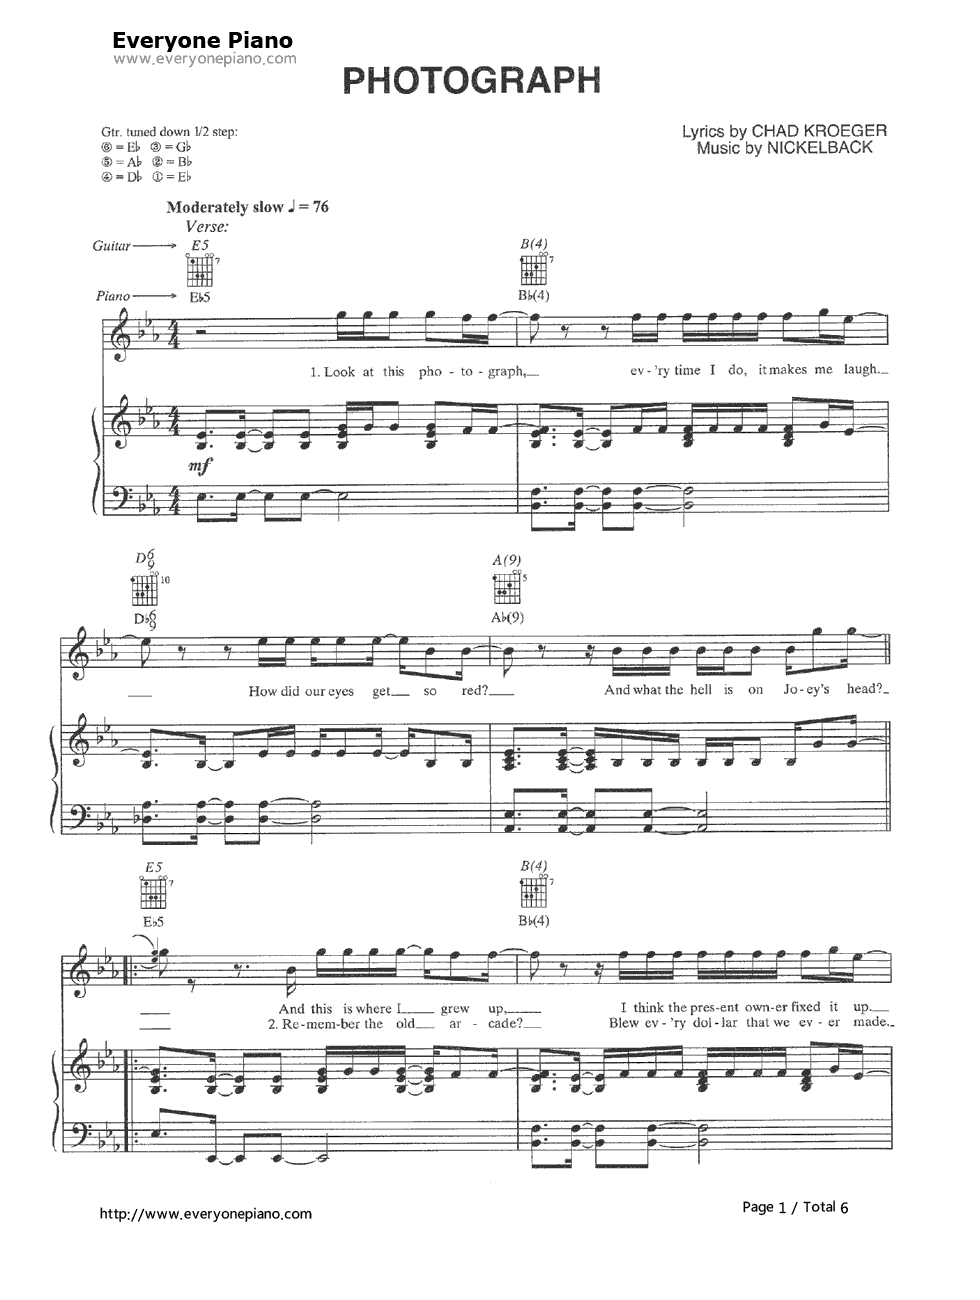 Photograph nickelback stave preview 1 free piano sheet music listen now print sheet photograph nickelback stave preview 1 hexwebz Gallery